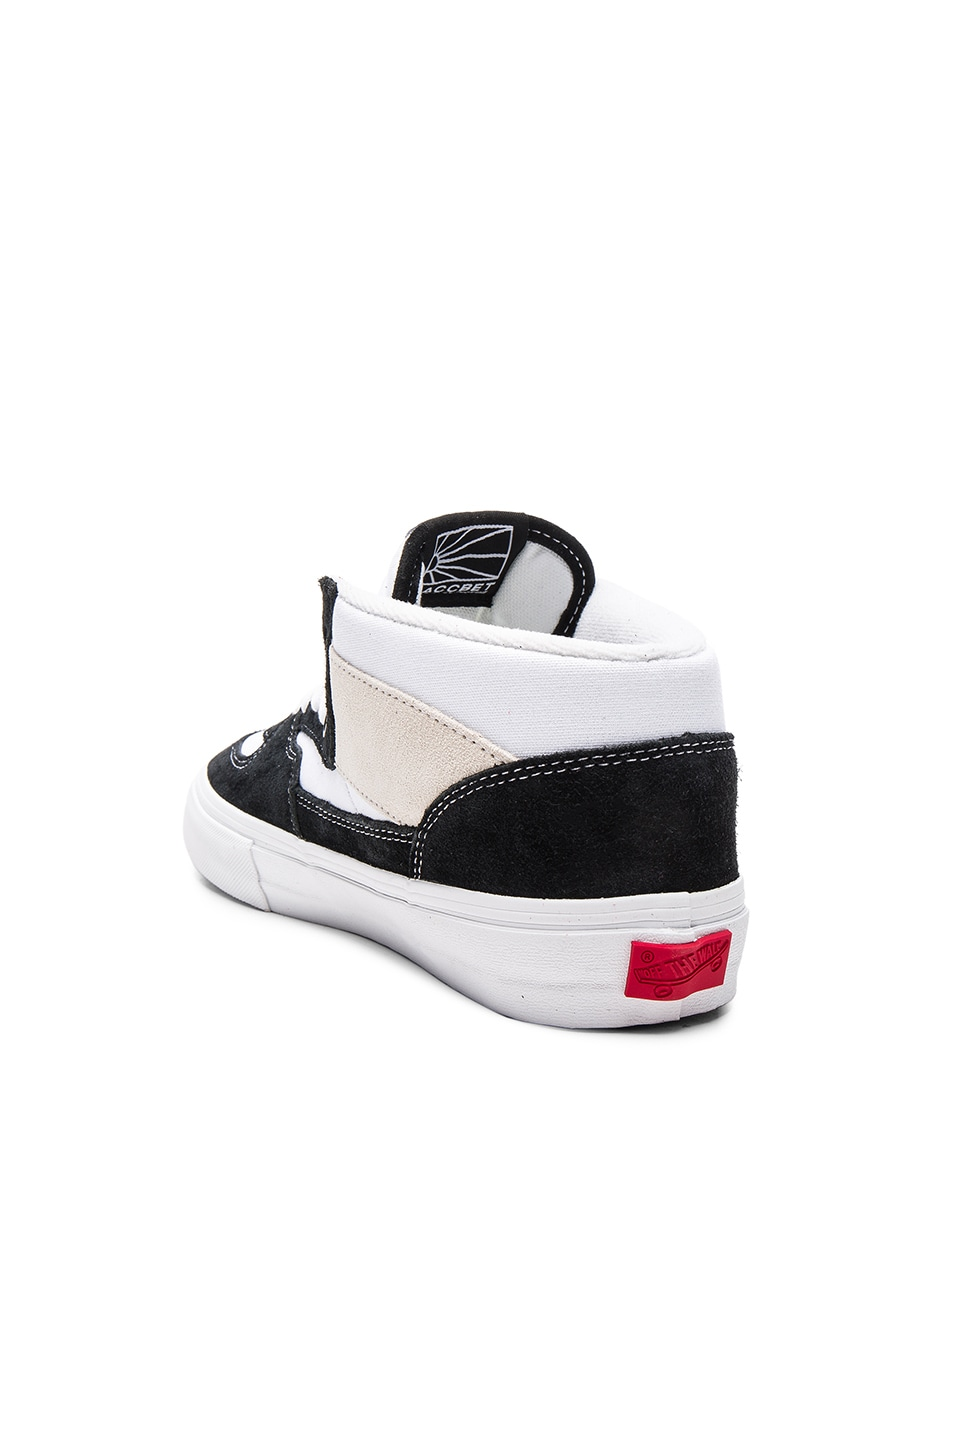 e524671b23100e Image 3 of Gosha Rubchinskiy x Vans Half Cab High Sneakers in Black   White